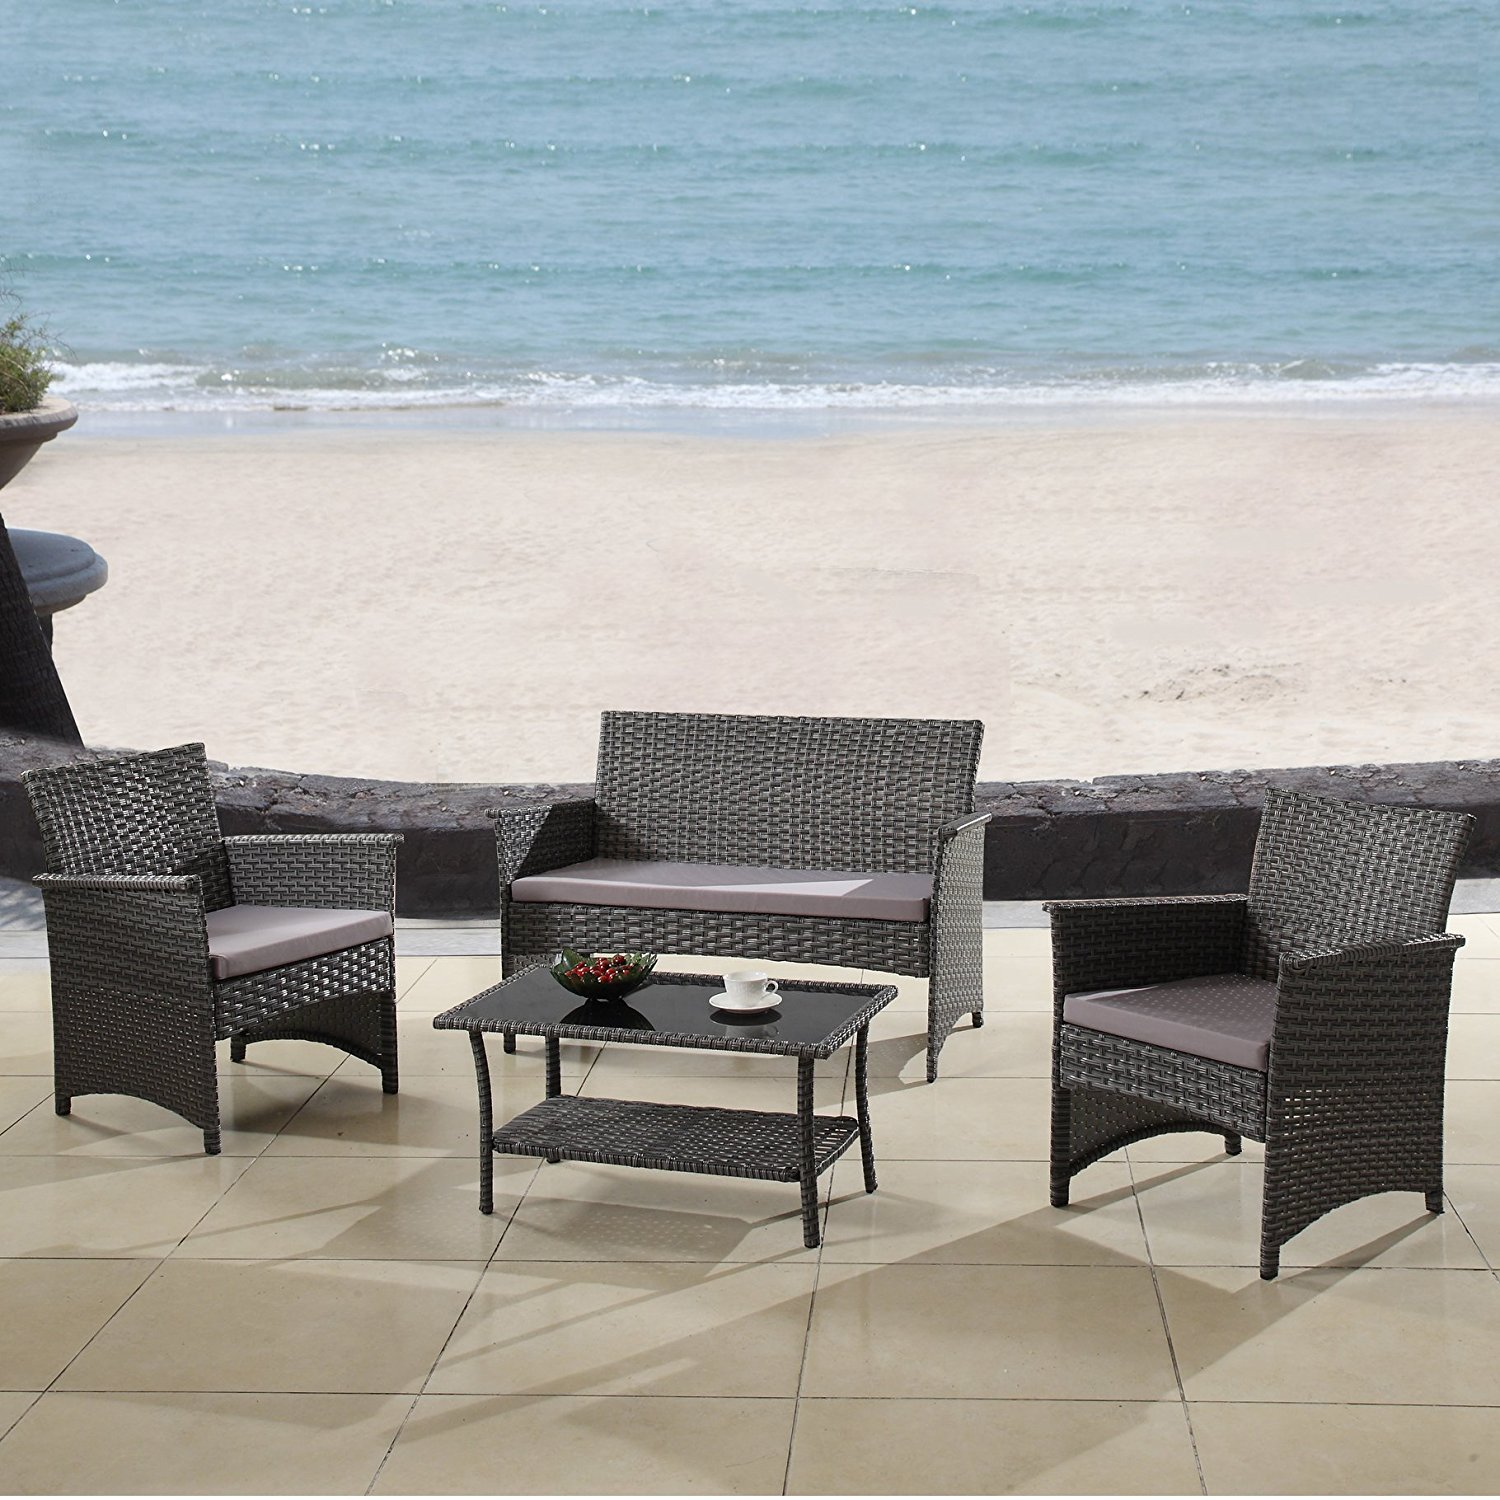 Outdoor Patio Furniture Set Cushioned 4 Pieces Wicker Patio Set Table, Two Chairs and a Sofa Gray Finish with Gray Cushions Outdoor Furniture Lawn Rattan Garden Set